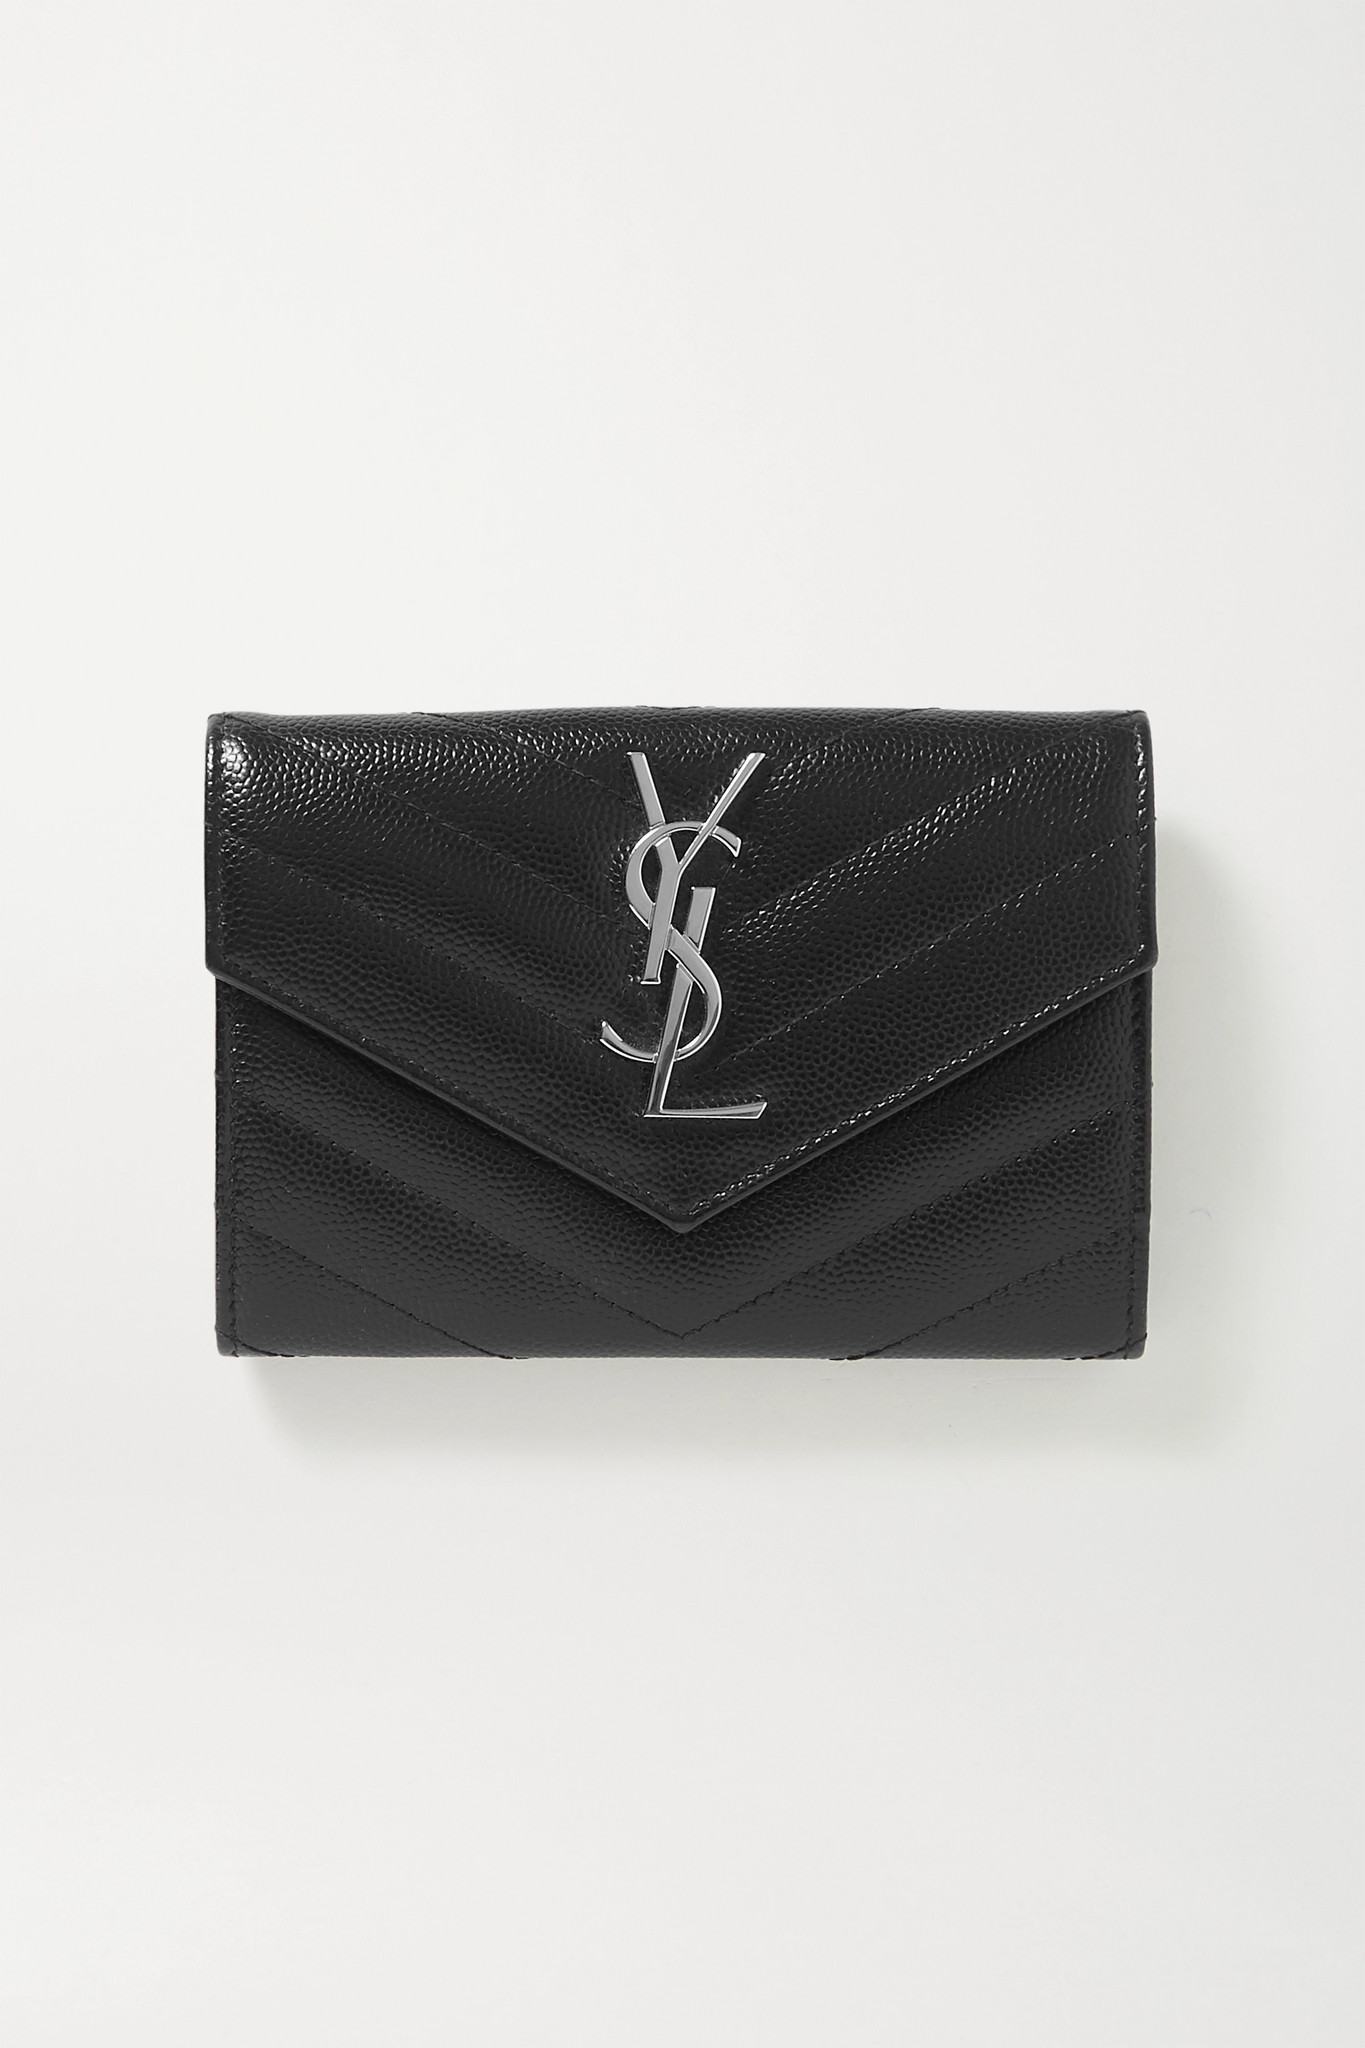 SAINT LAURENT - Monogram Quilted Textured-leather Wallet - Black - one size